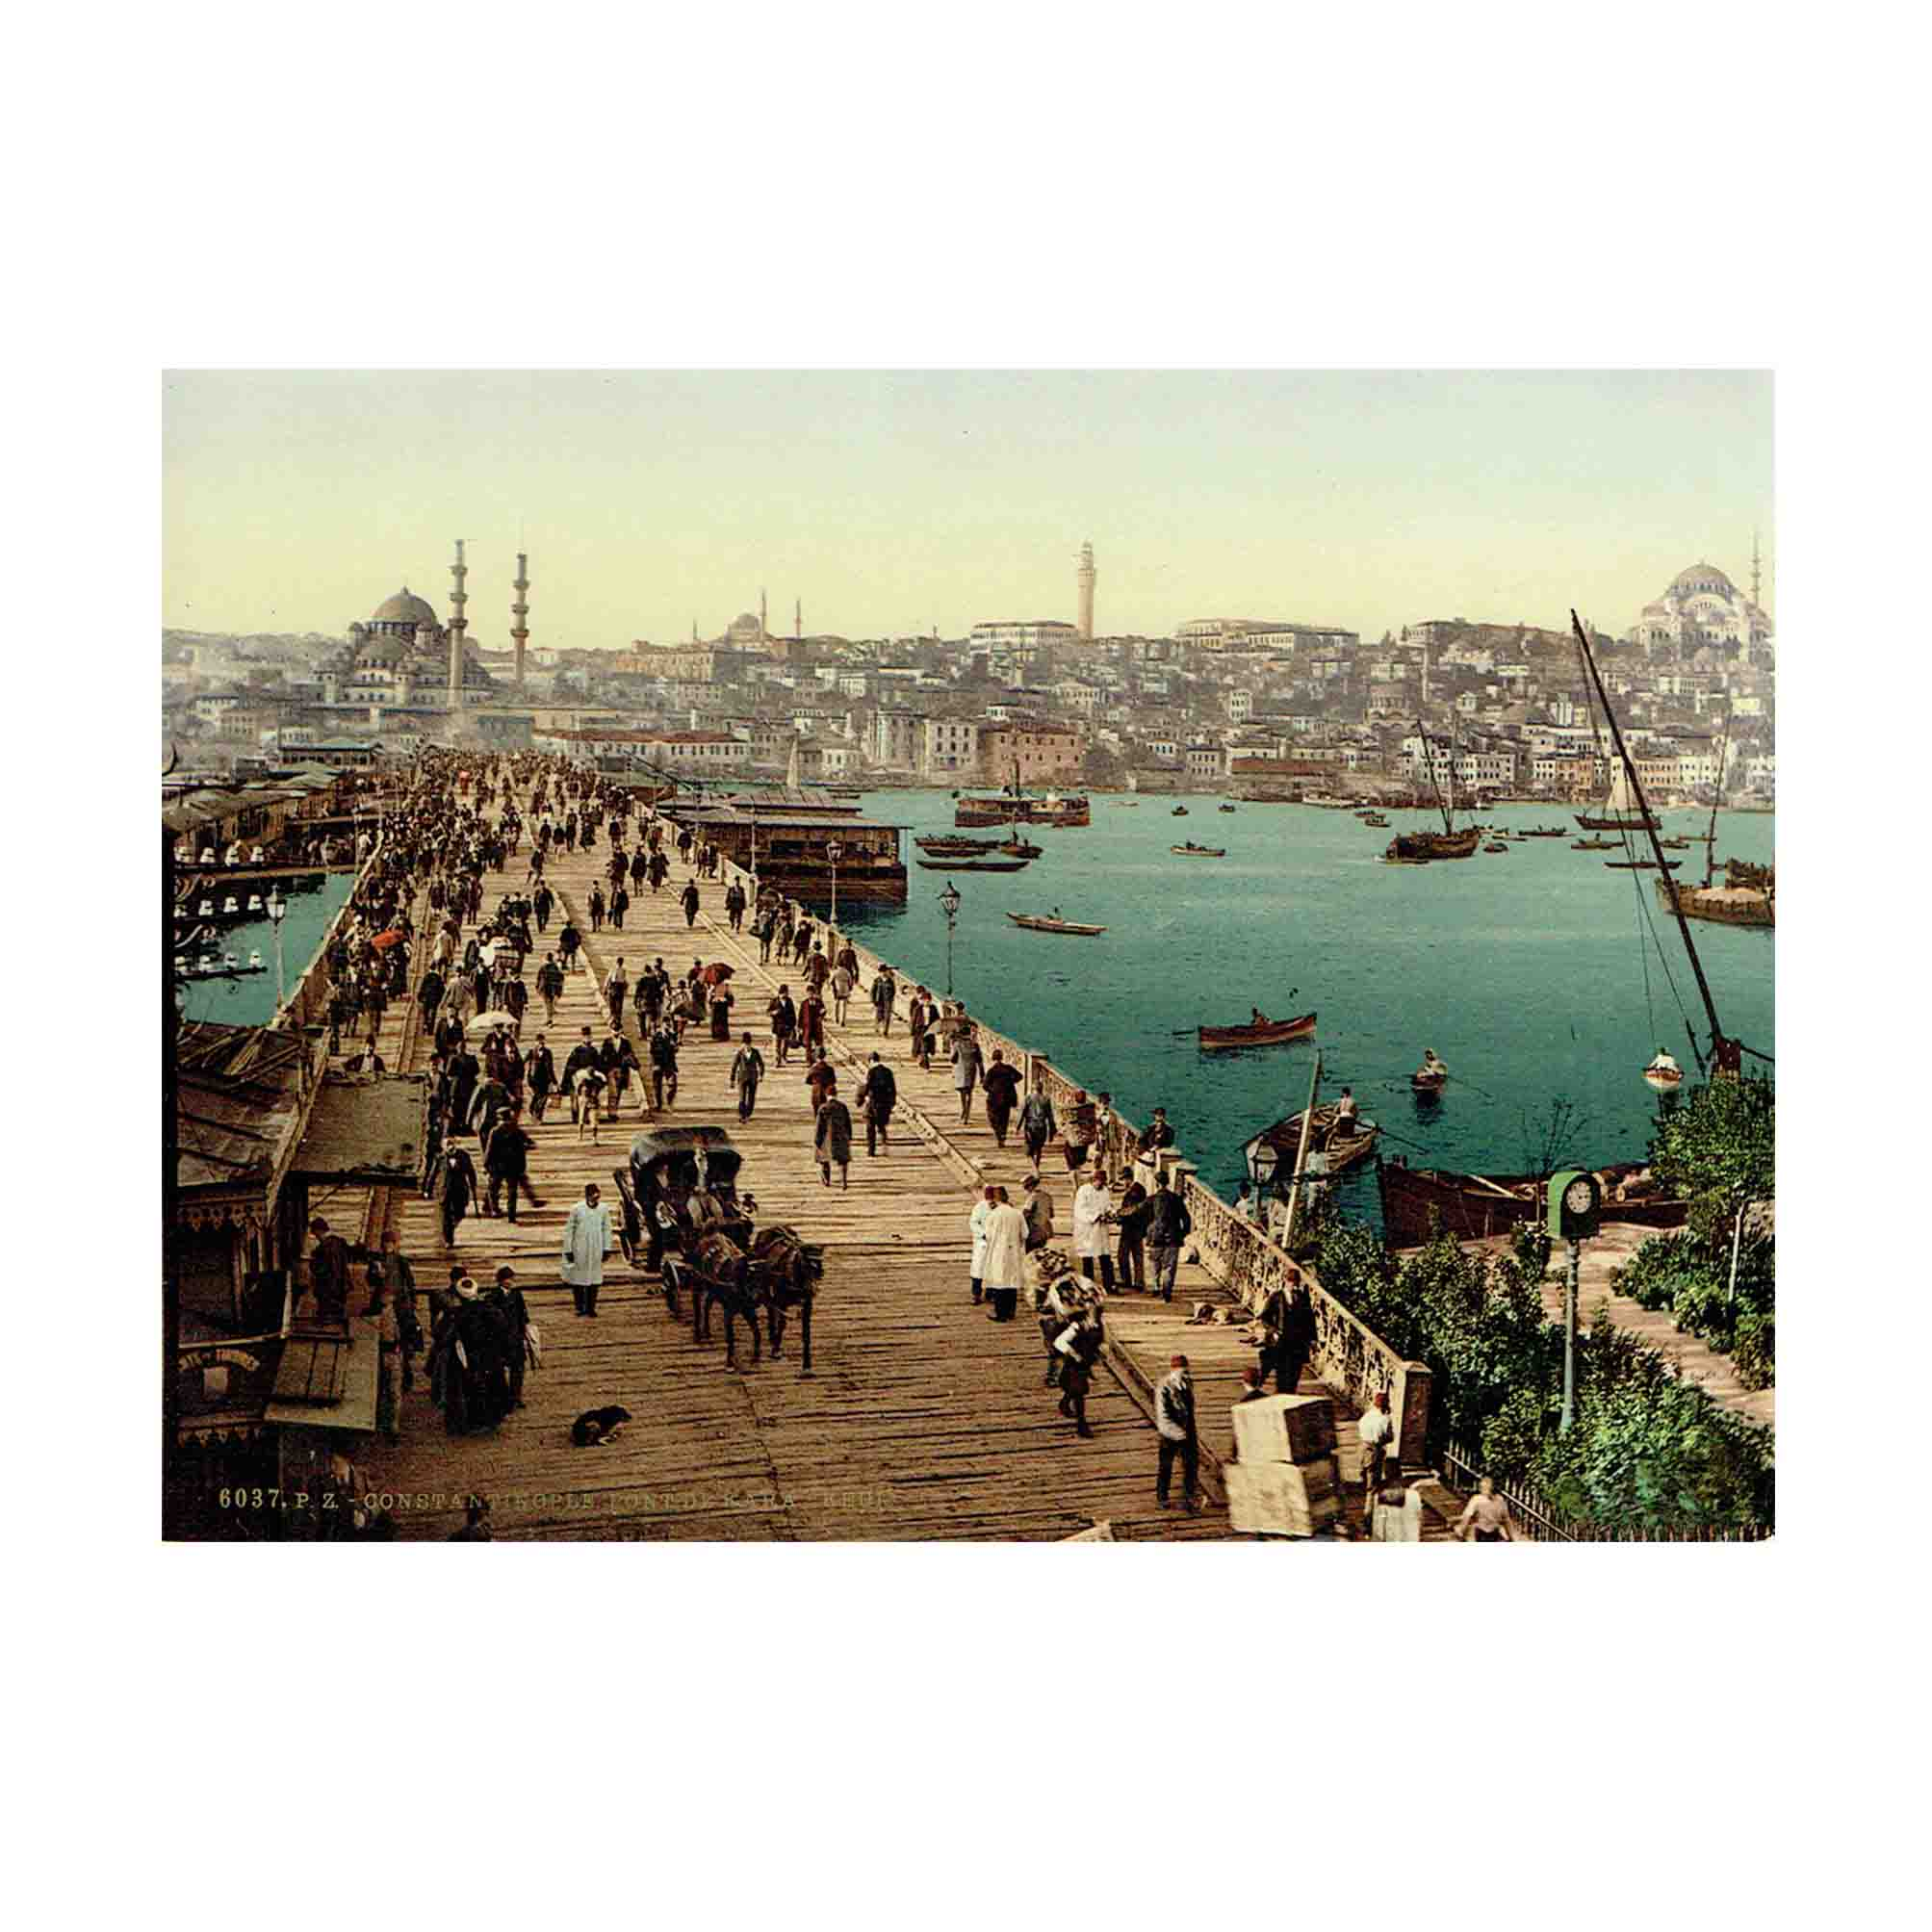 5984 Set 21 Photochrom Constantinople 6037 Kara-Keui Galata bridge Constantinople 1890 1900 N